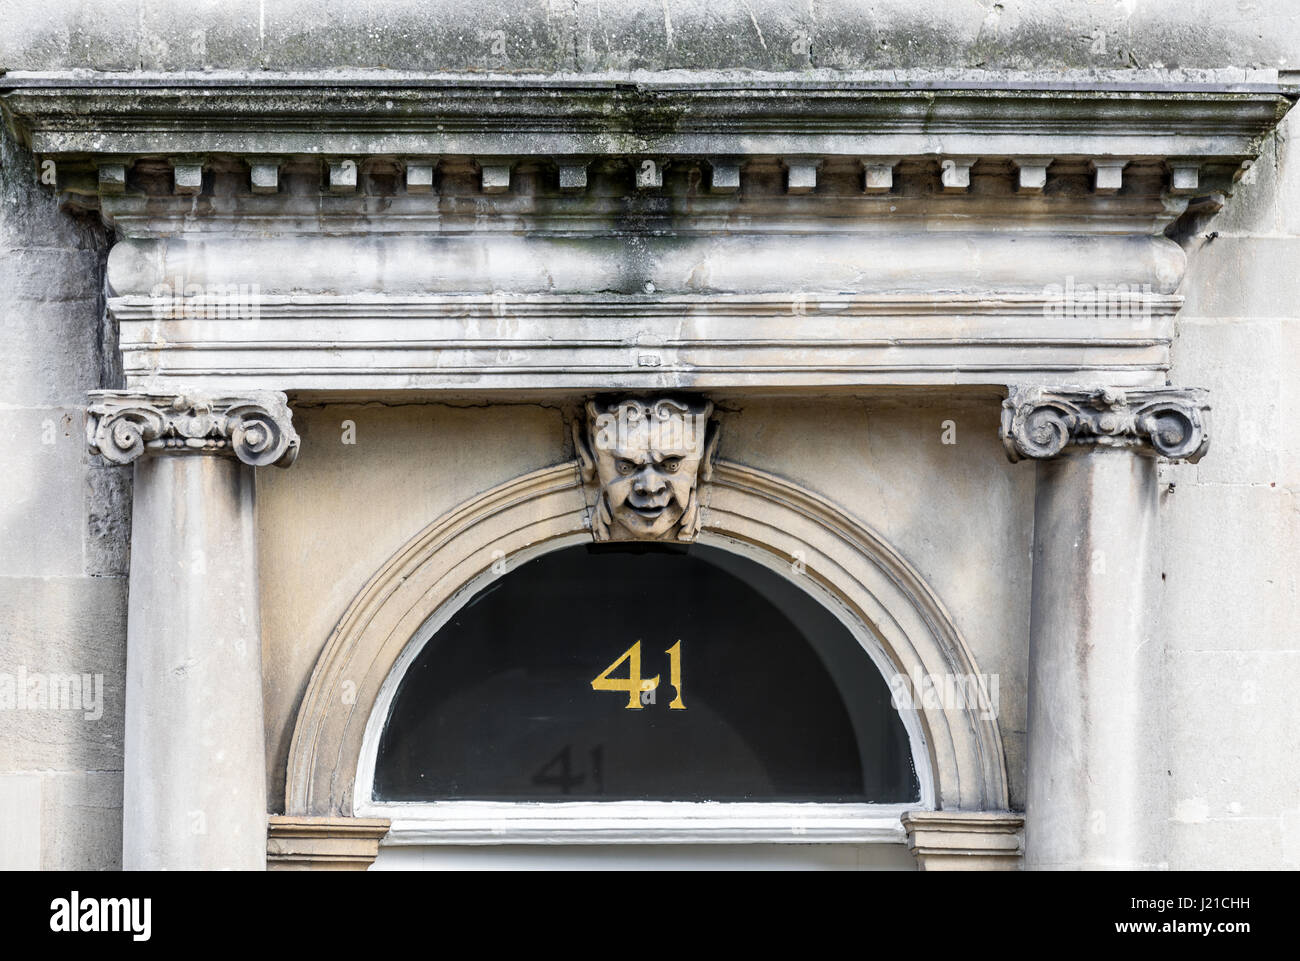 Door captial with face, Doric columns and pediment in London England, UK - Stock Image